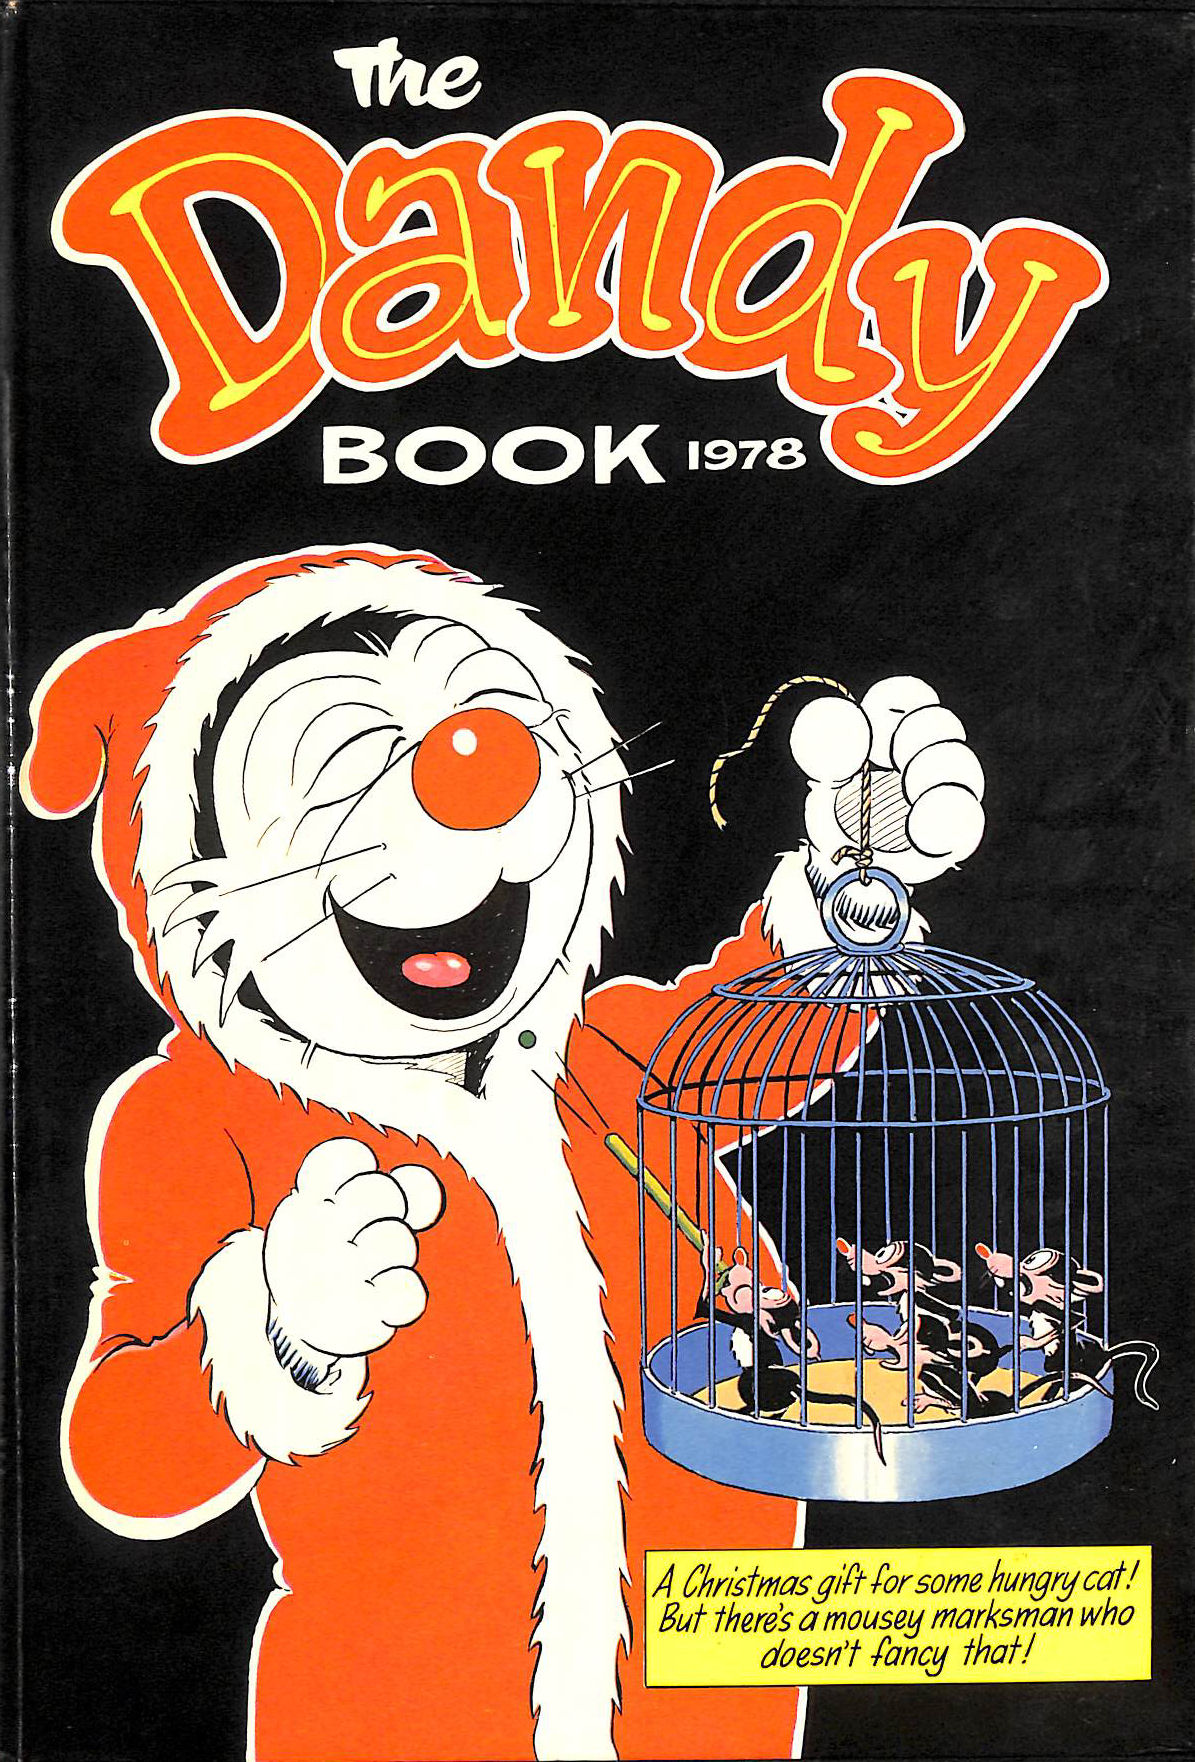 Image for The Dandy Book 1978